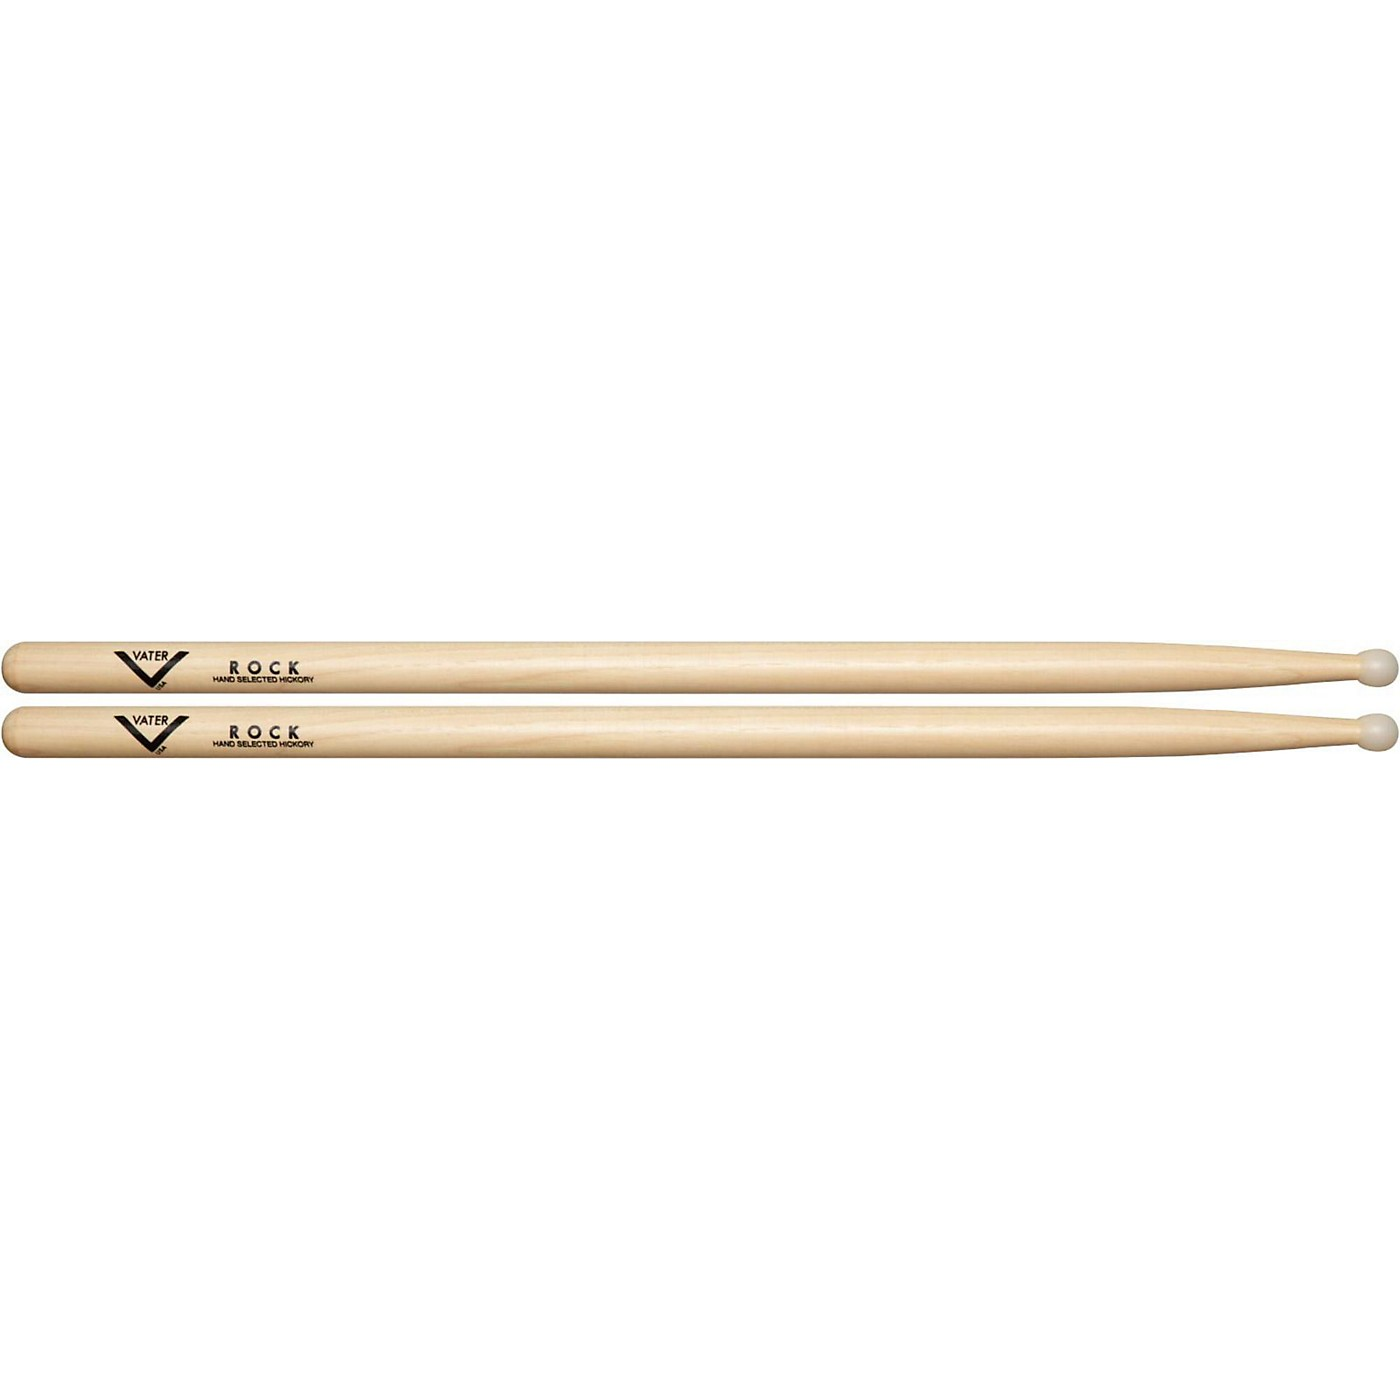 Vater American Hickory Rock Drumsticks thumbnail